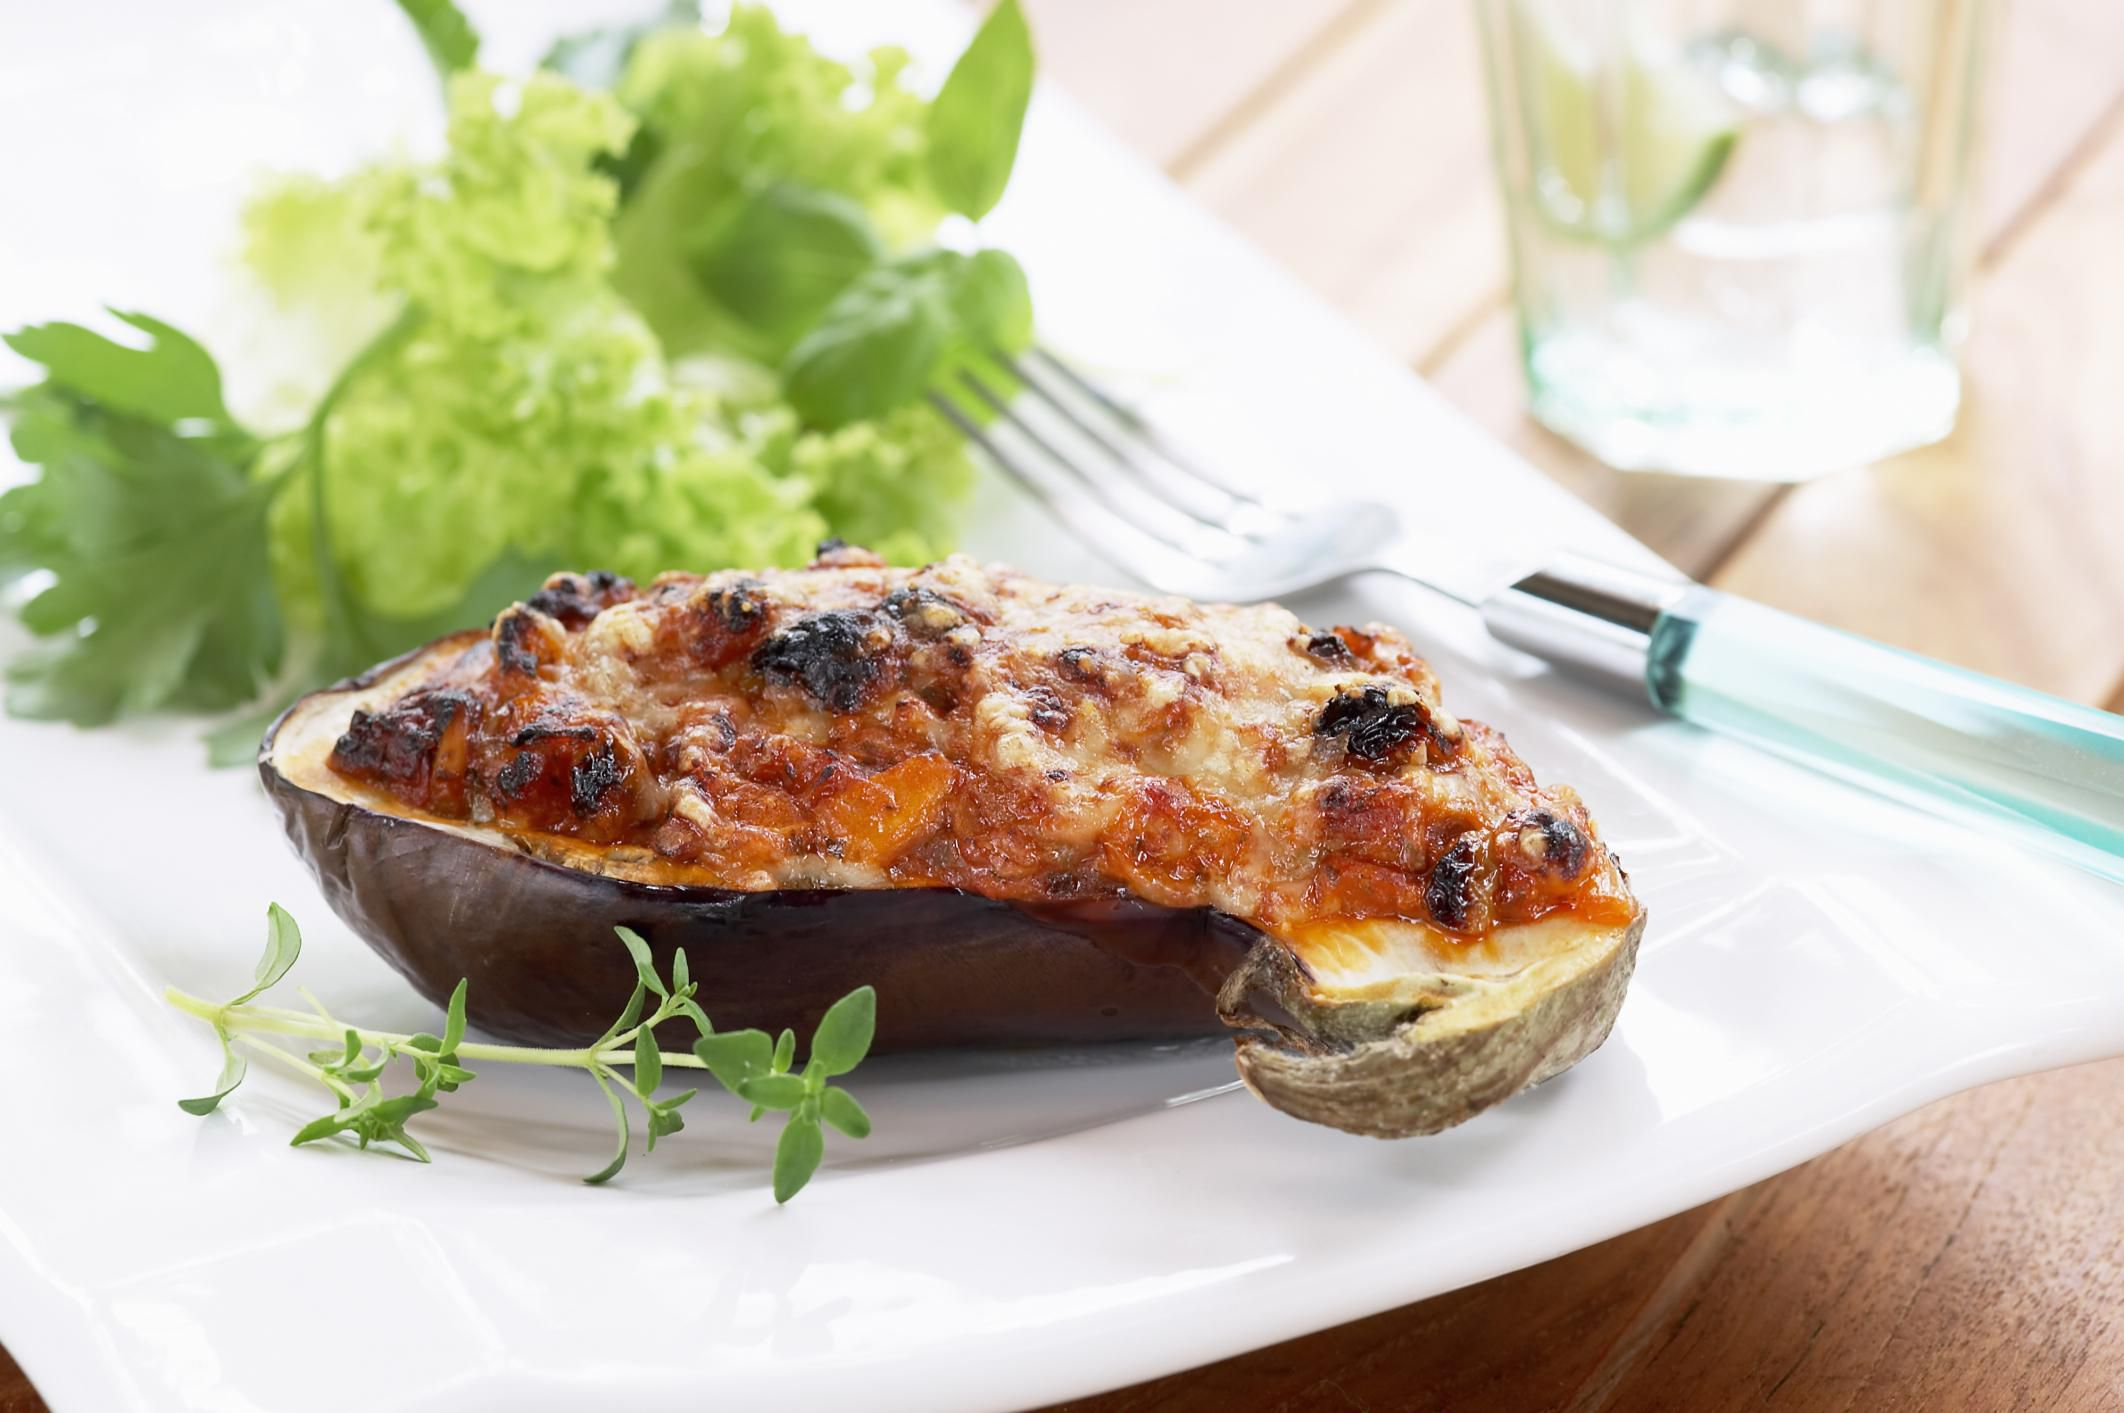 Baked Eggplant with Feta Cheese Recipe